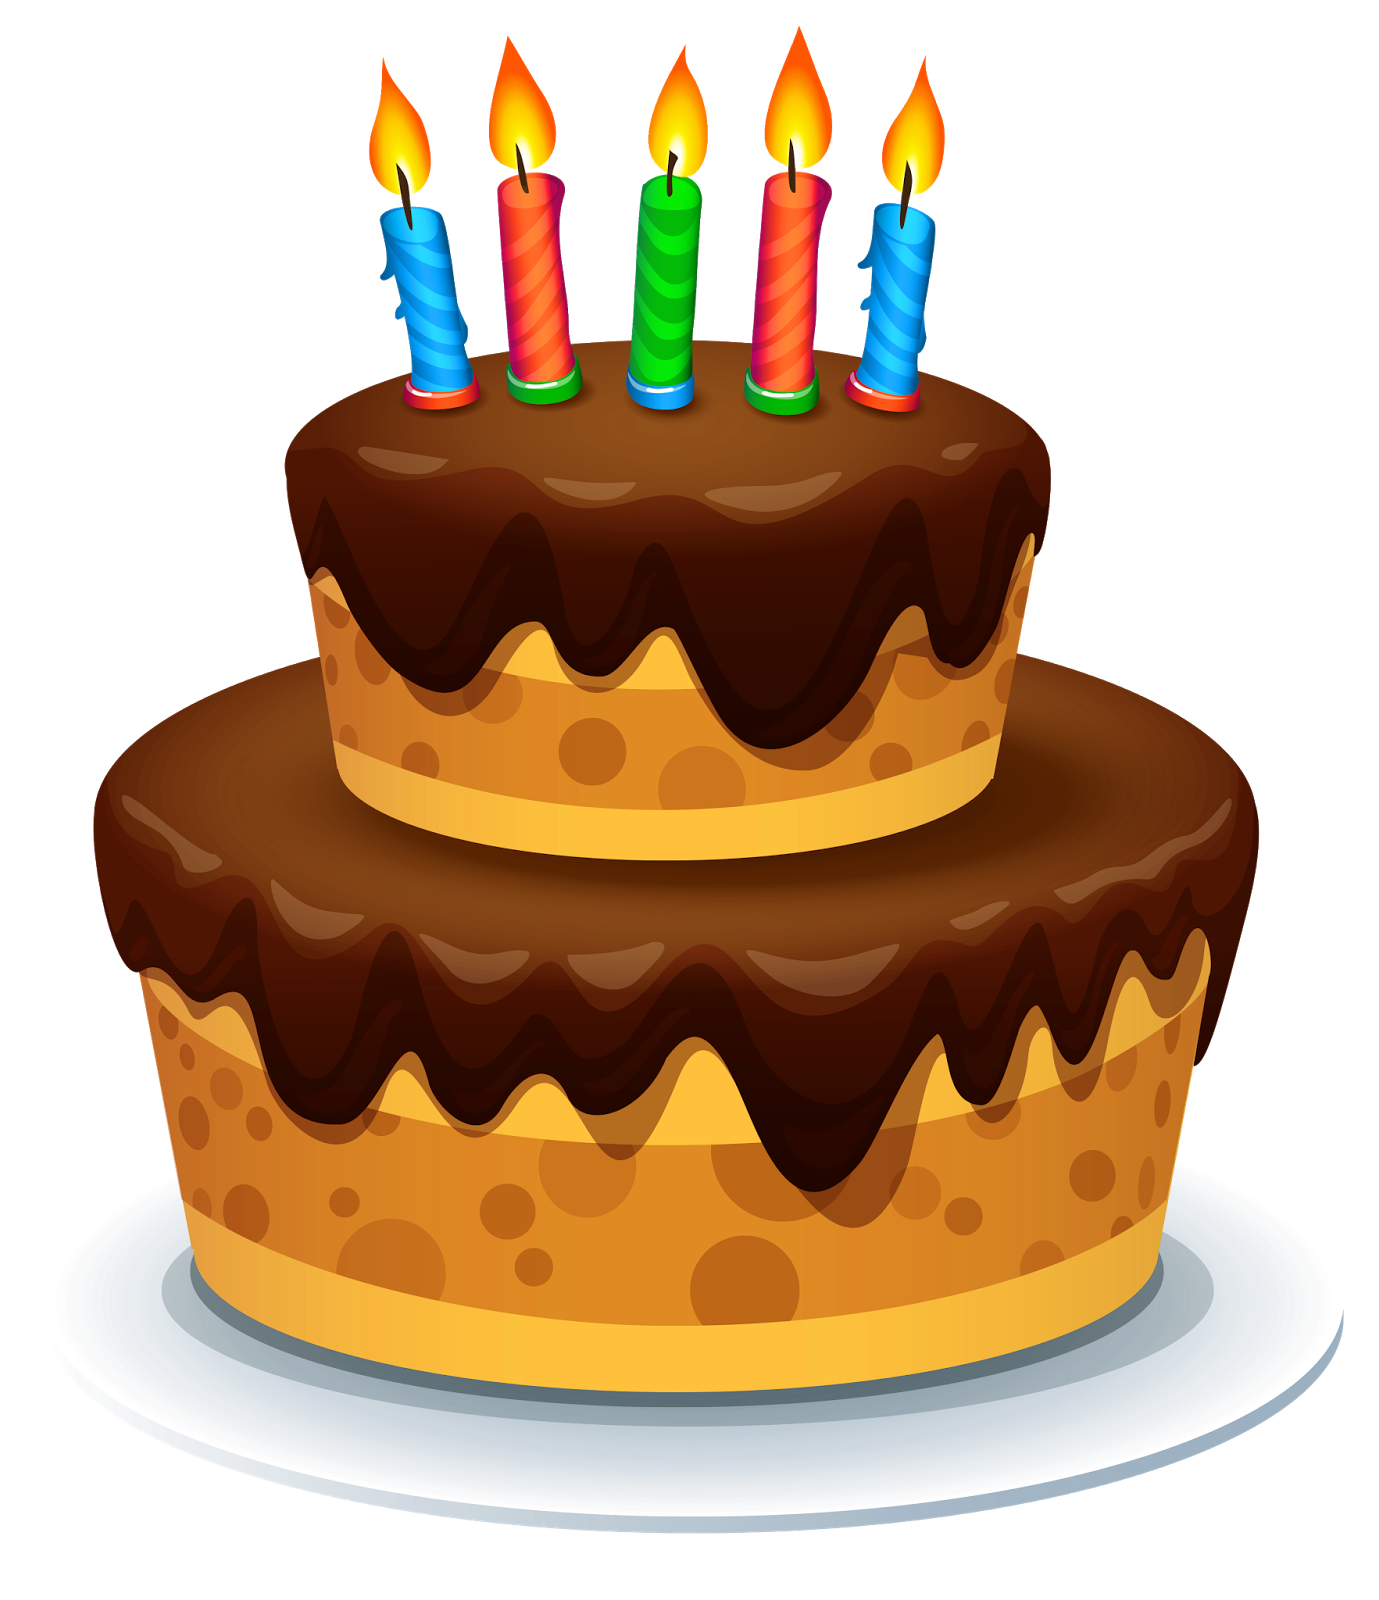 Happy birthday graphics clip. Cookies clipart baked goods